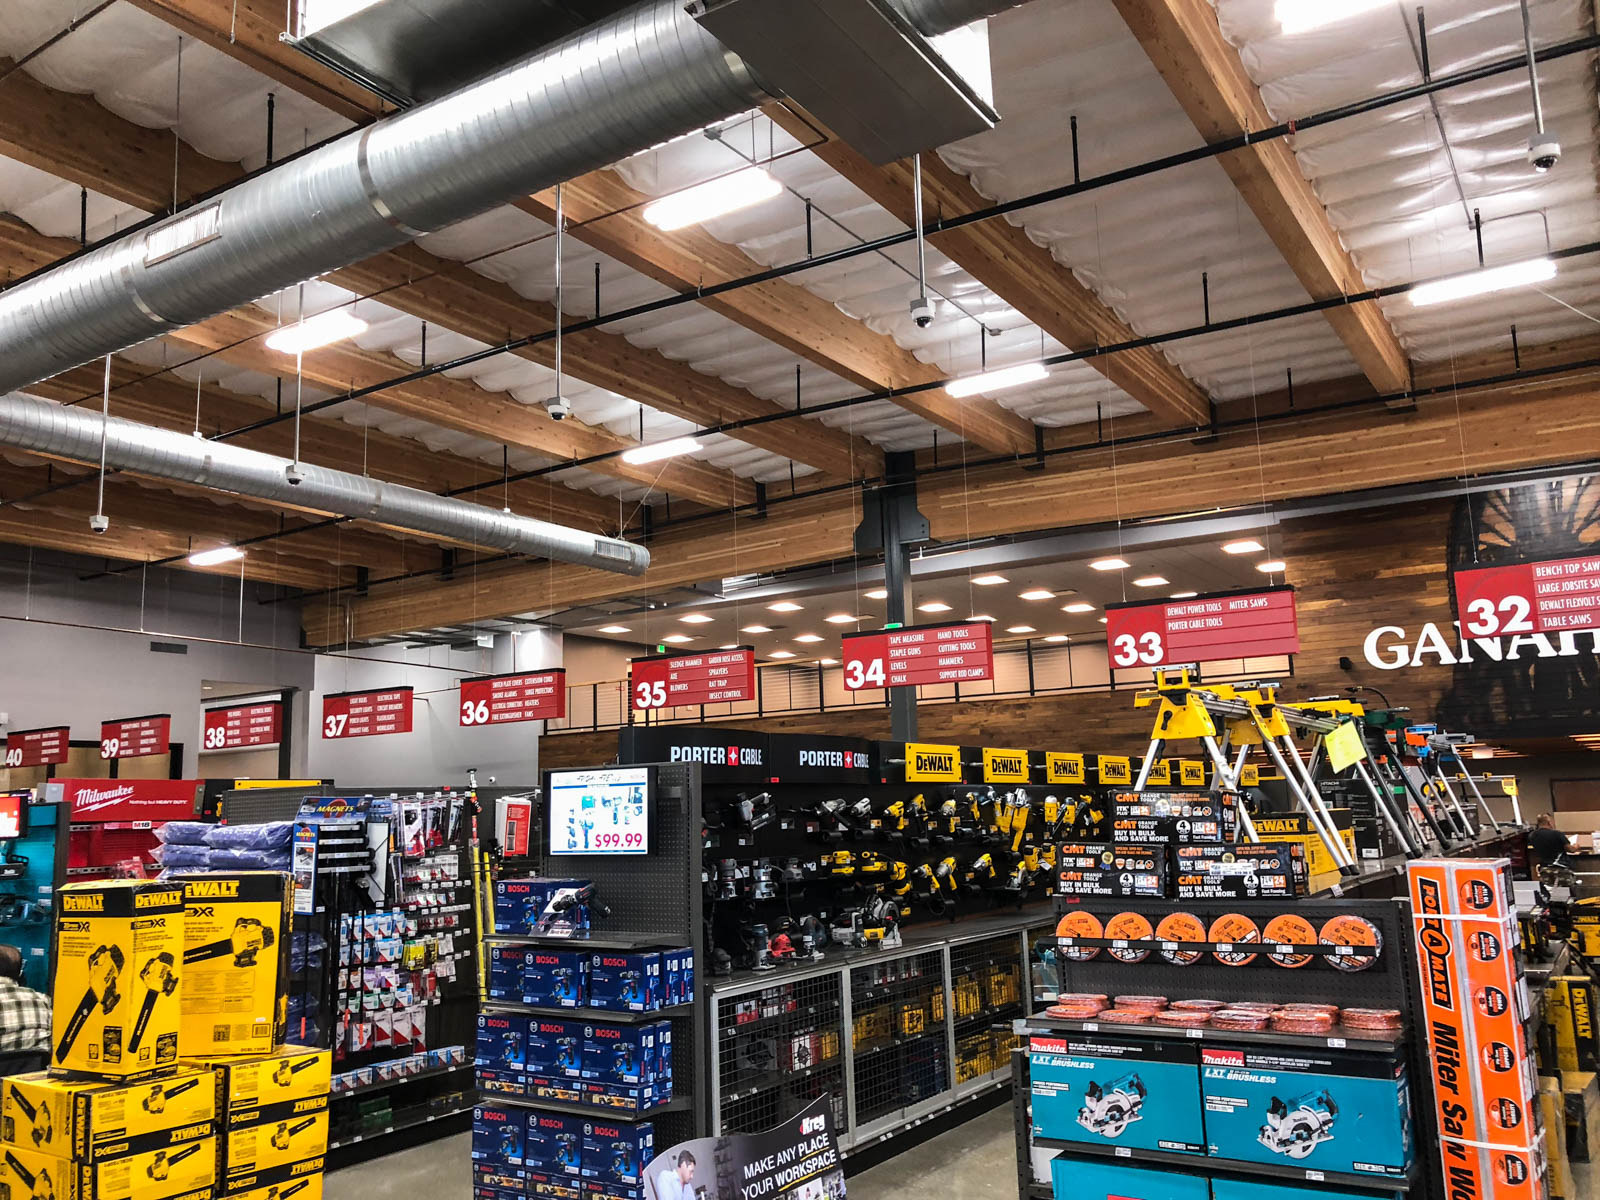 Ganahl Lumber Photo - Aisle Overview